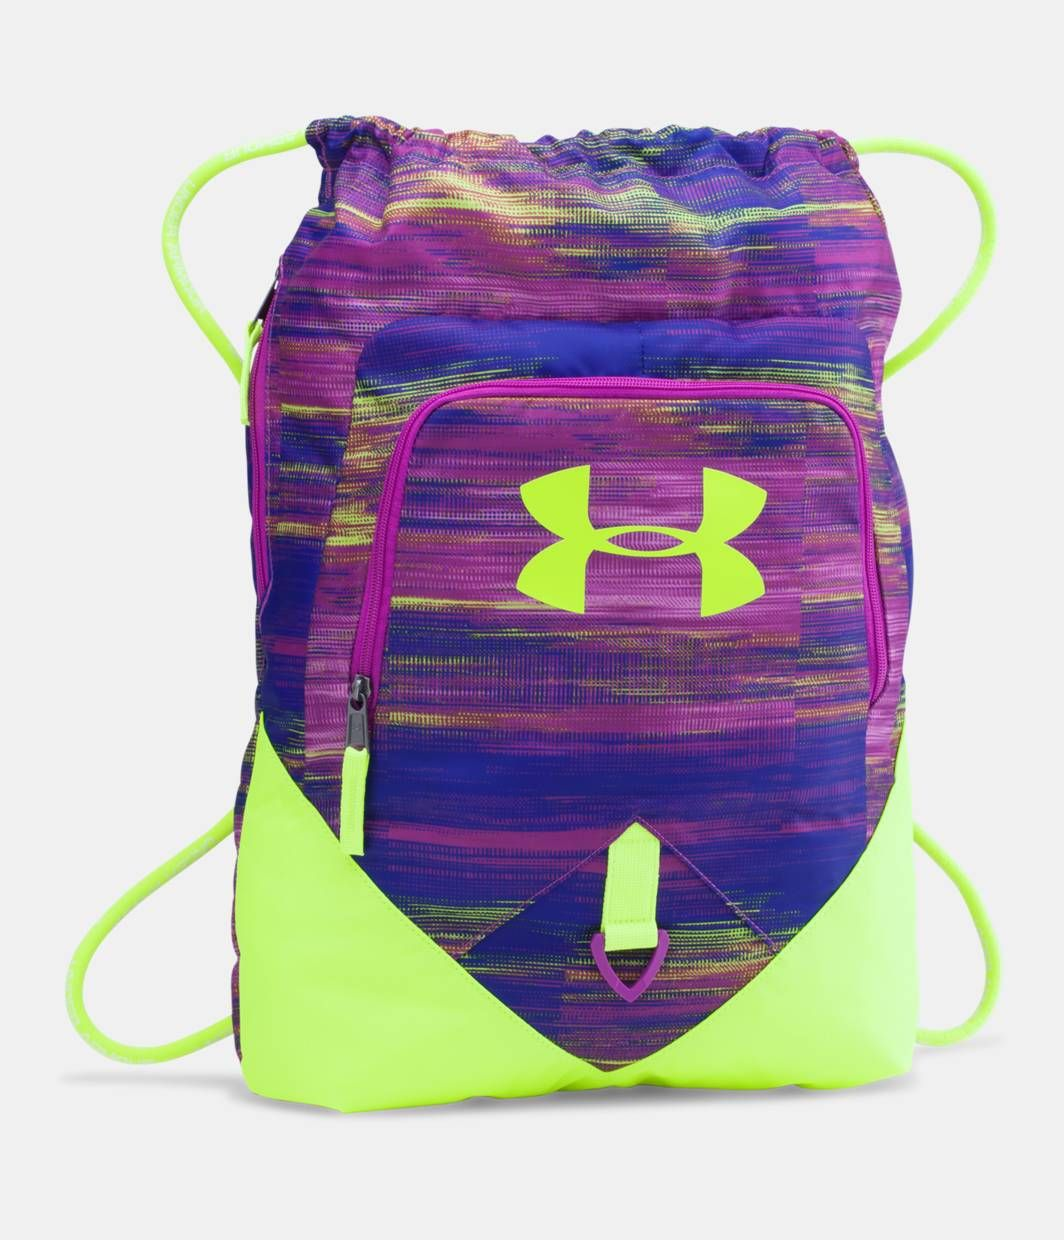 f0cd49c297 Shop Under Armour for UA Undeniable Sackpack in our Unisex Bags department.  Free shipping is available in US.